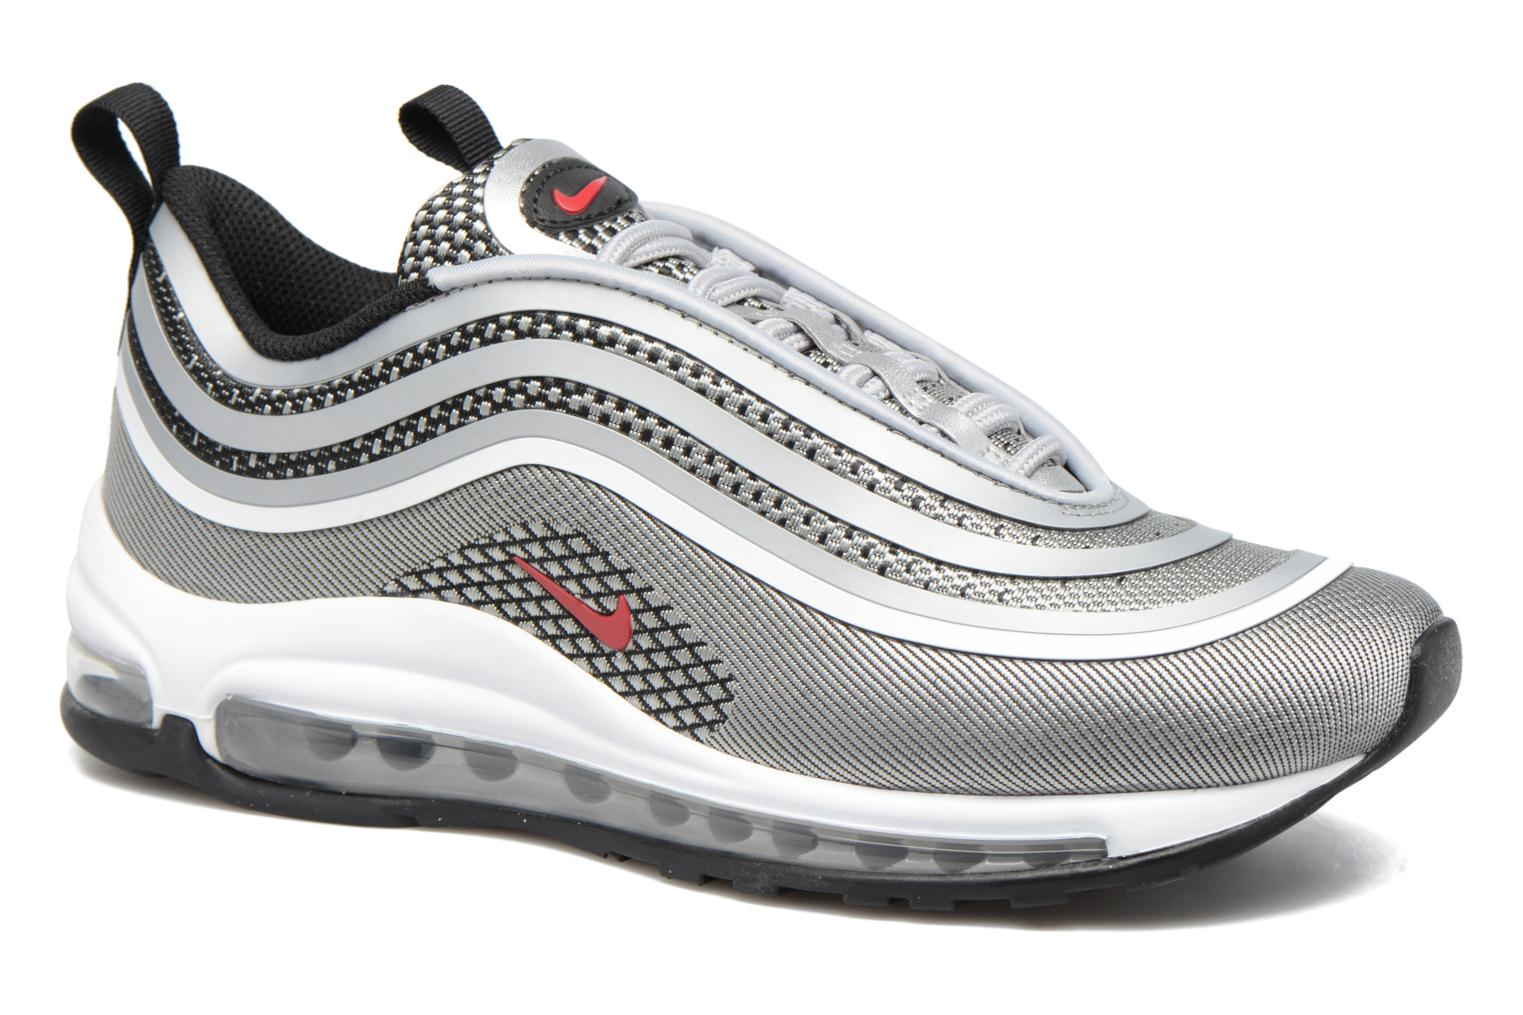 Air Max 97 Ul 17 (Gs) Metallic Silver/Varsity Red-Black-